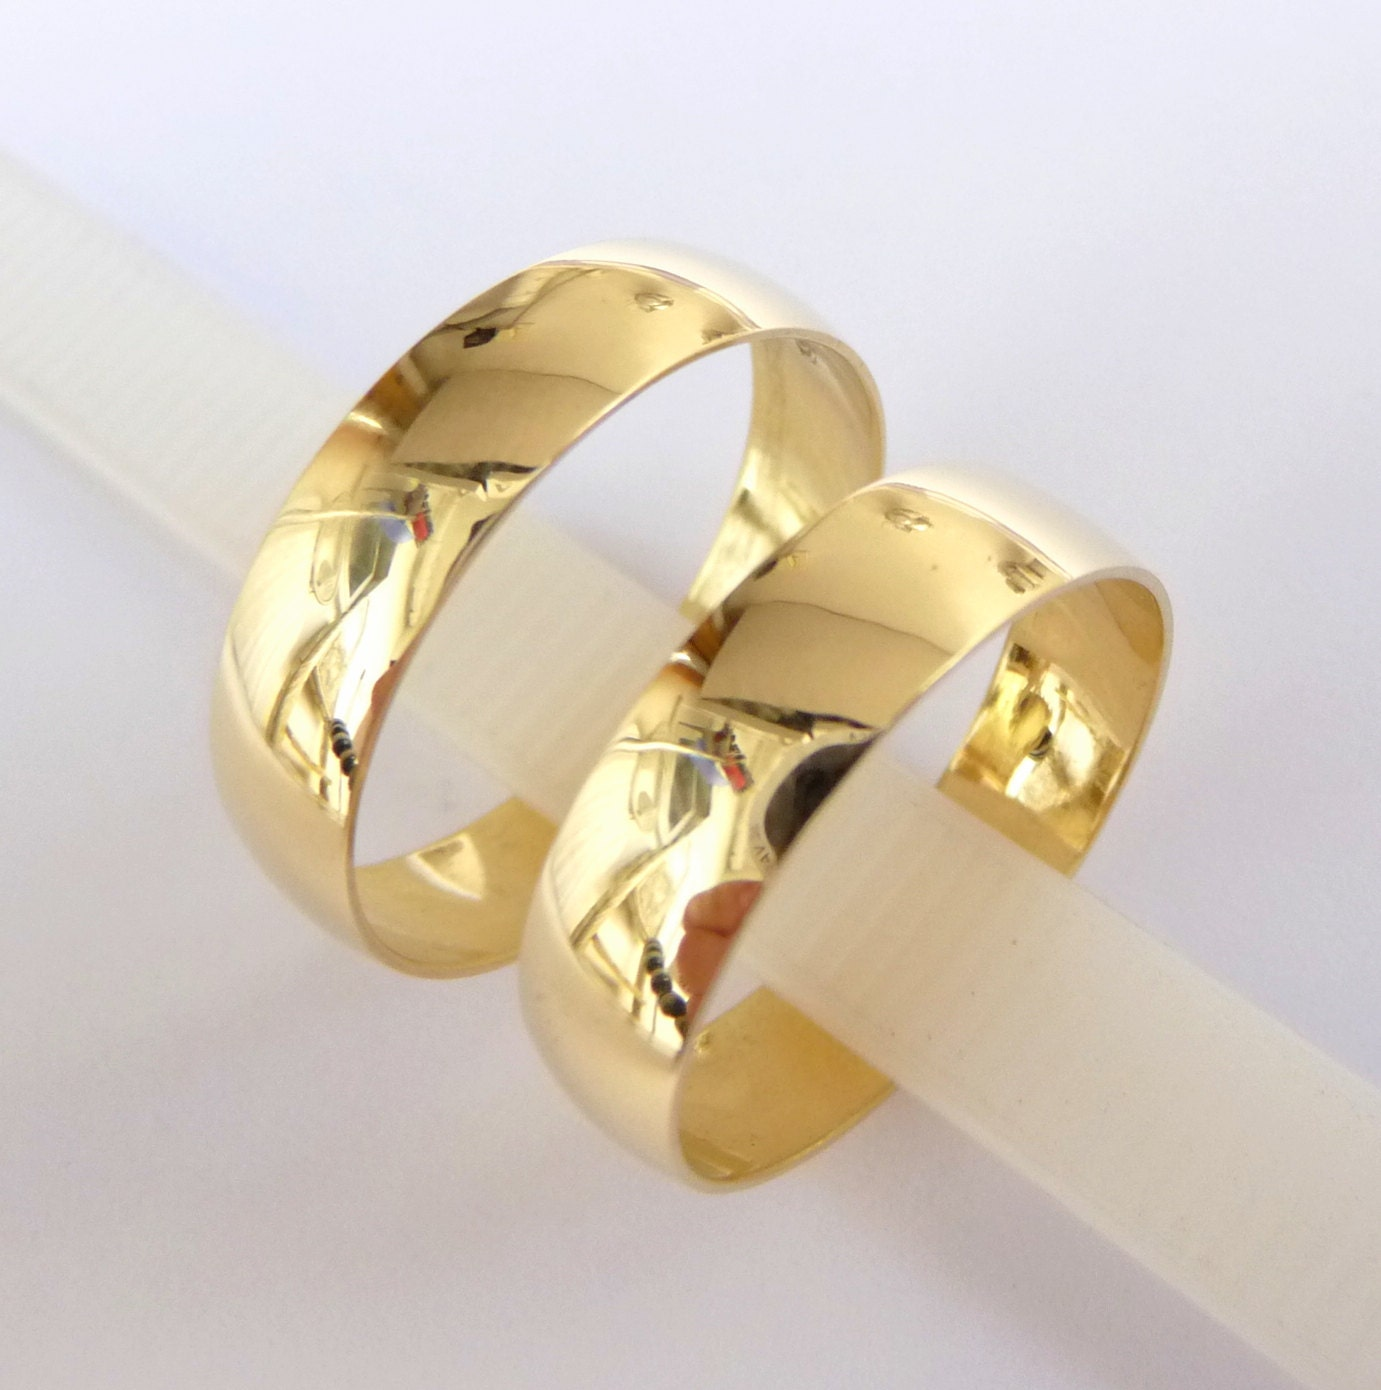 wedding bands set women 39 s men 39 s wedding rings gold 5mm. Black Bedroom Furniture Sets. Home Design Ideas